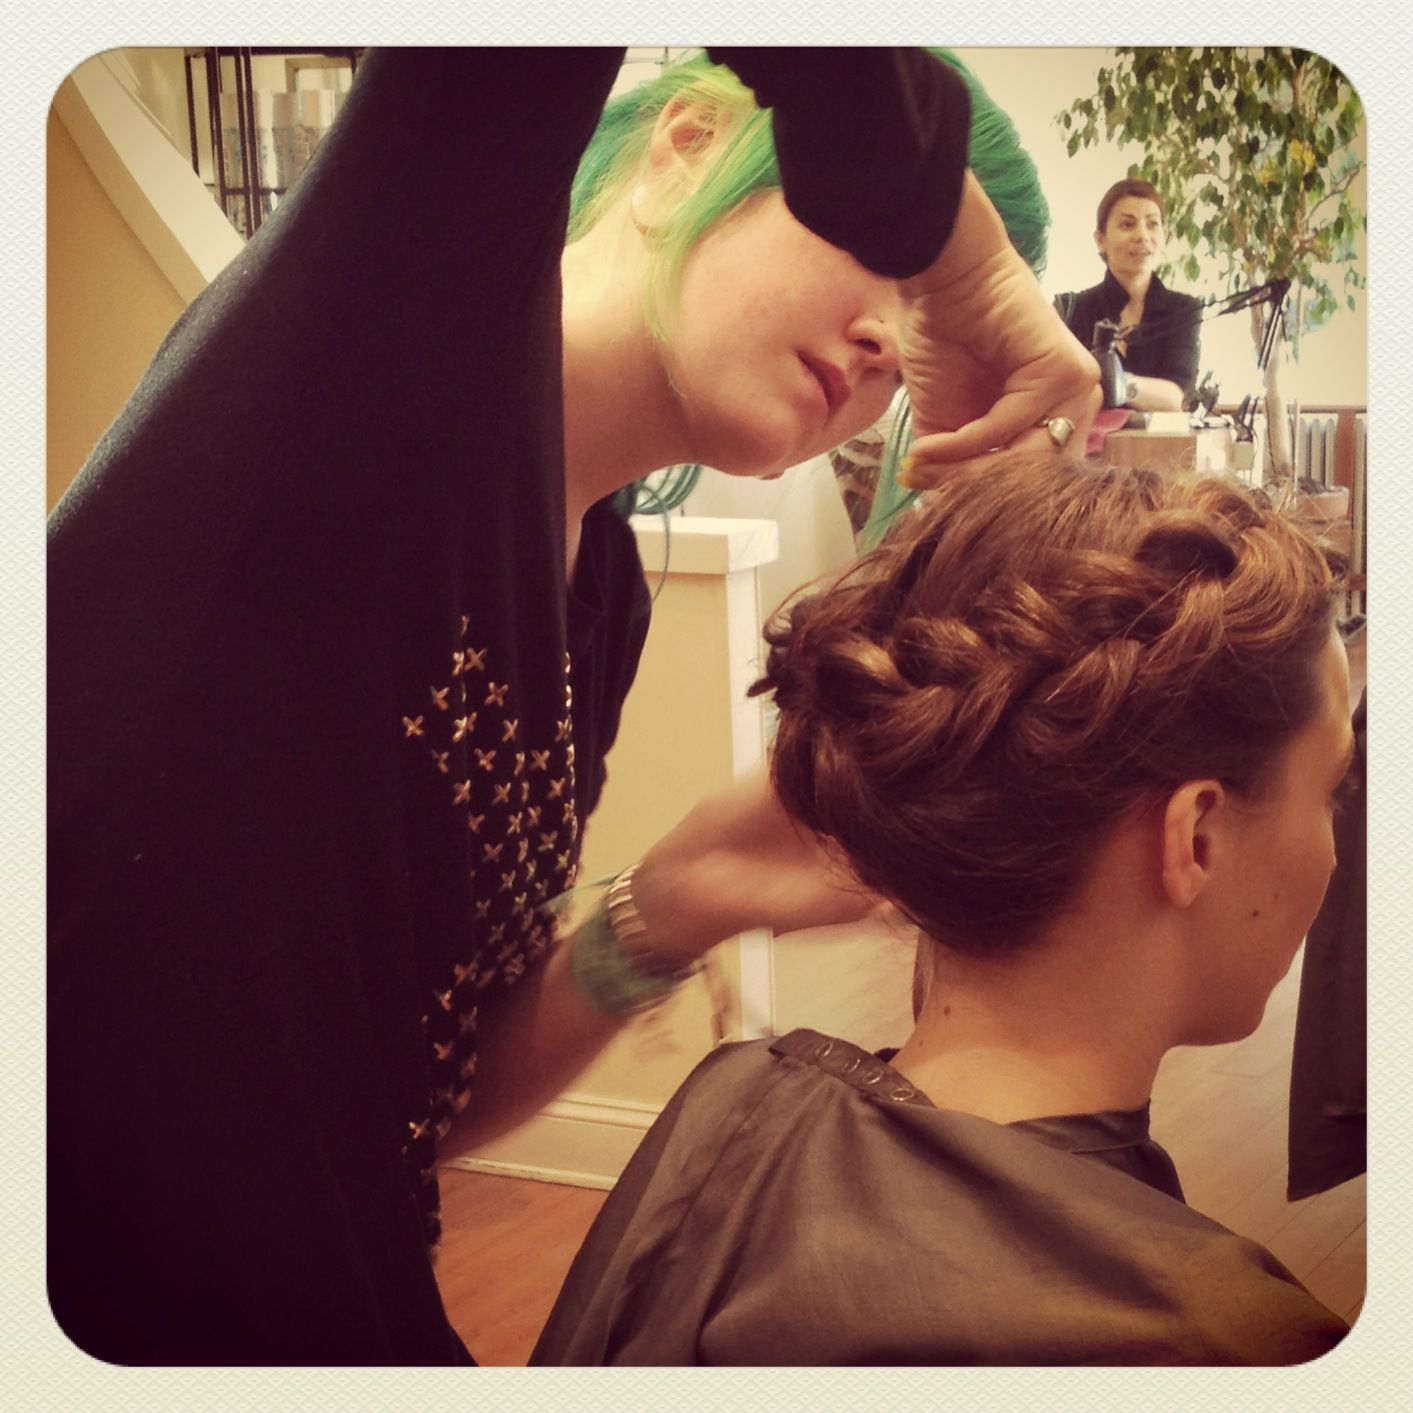 Braids via salon roula at sophia reyes photoshoot salon